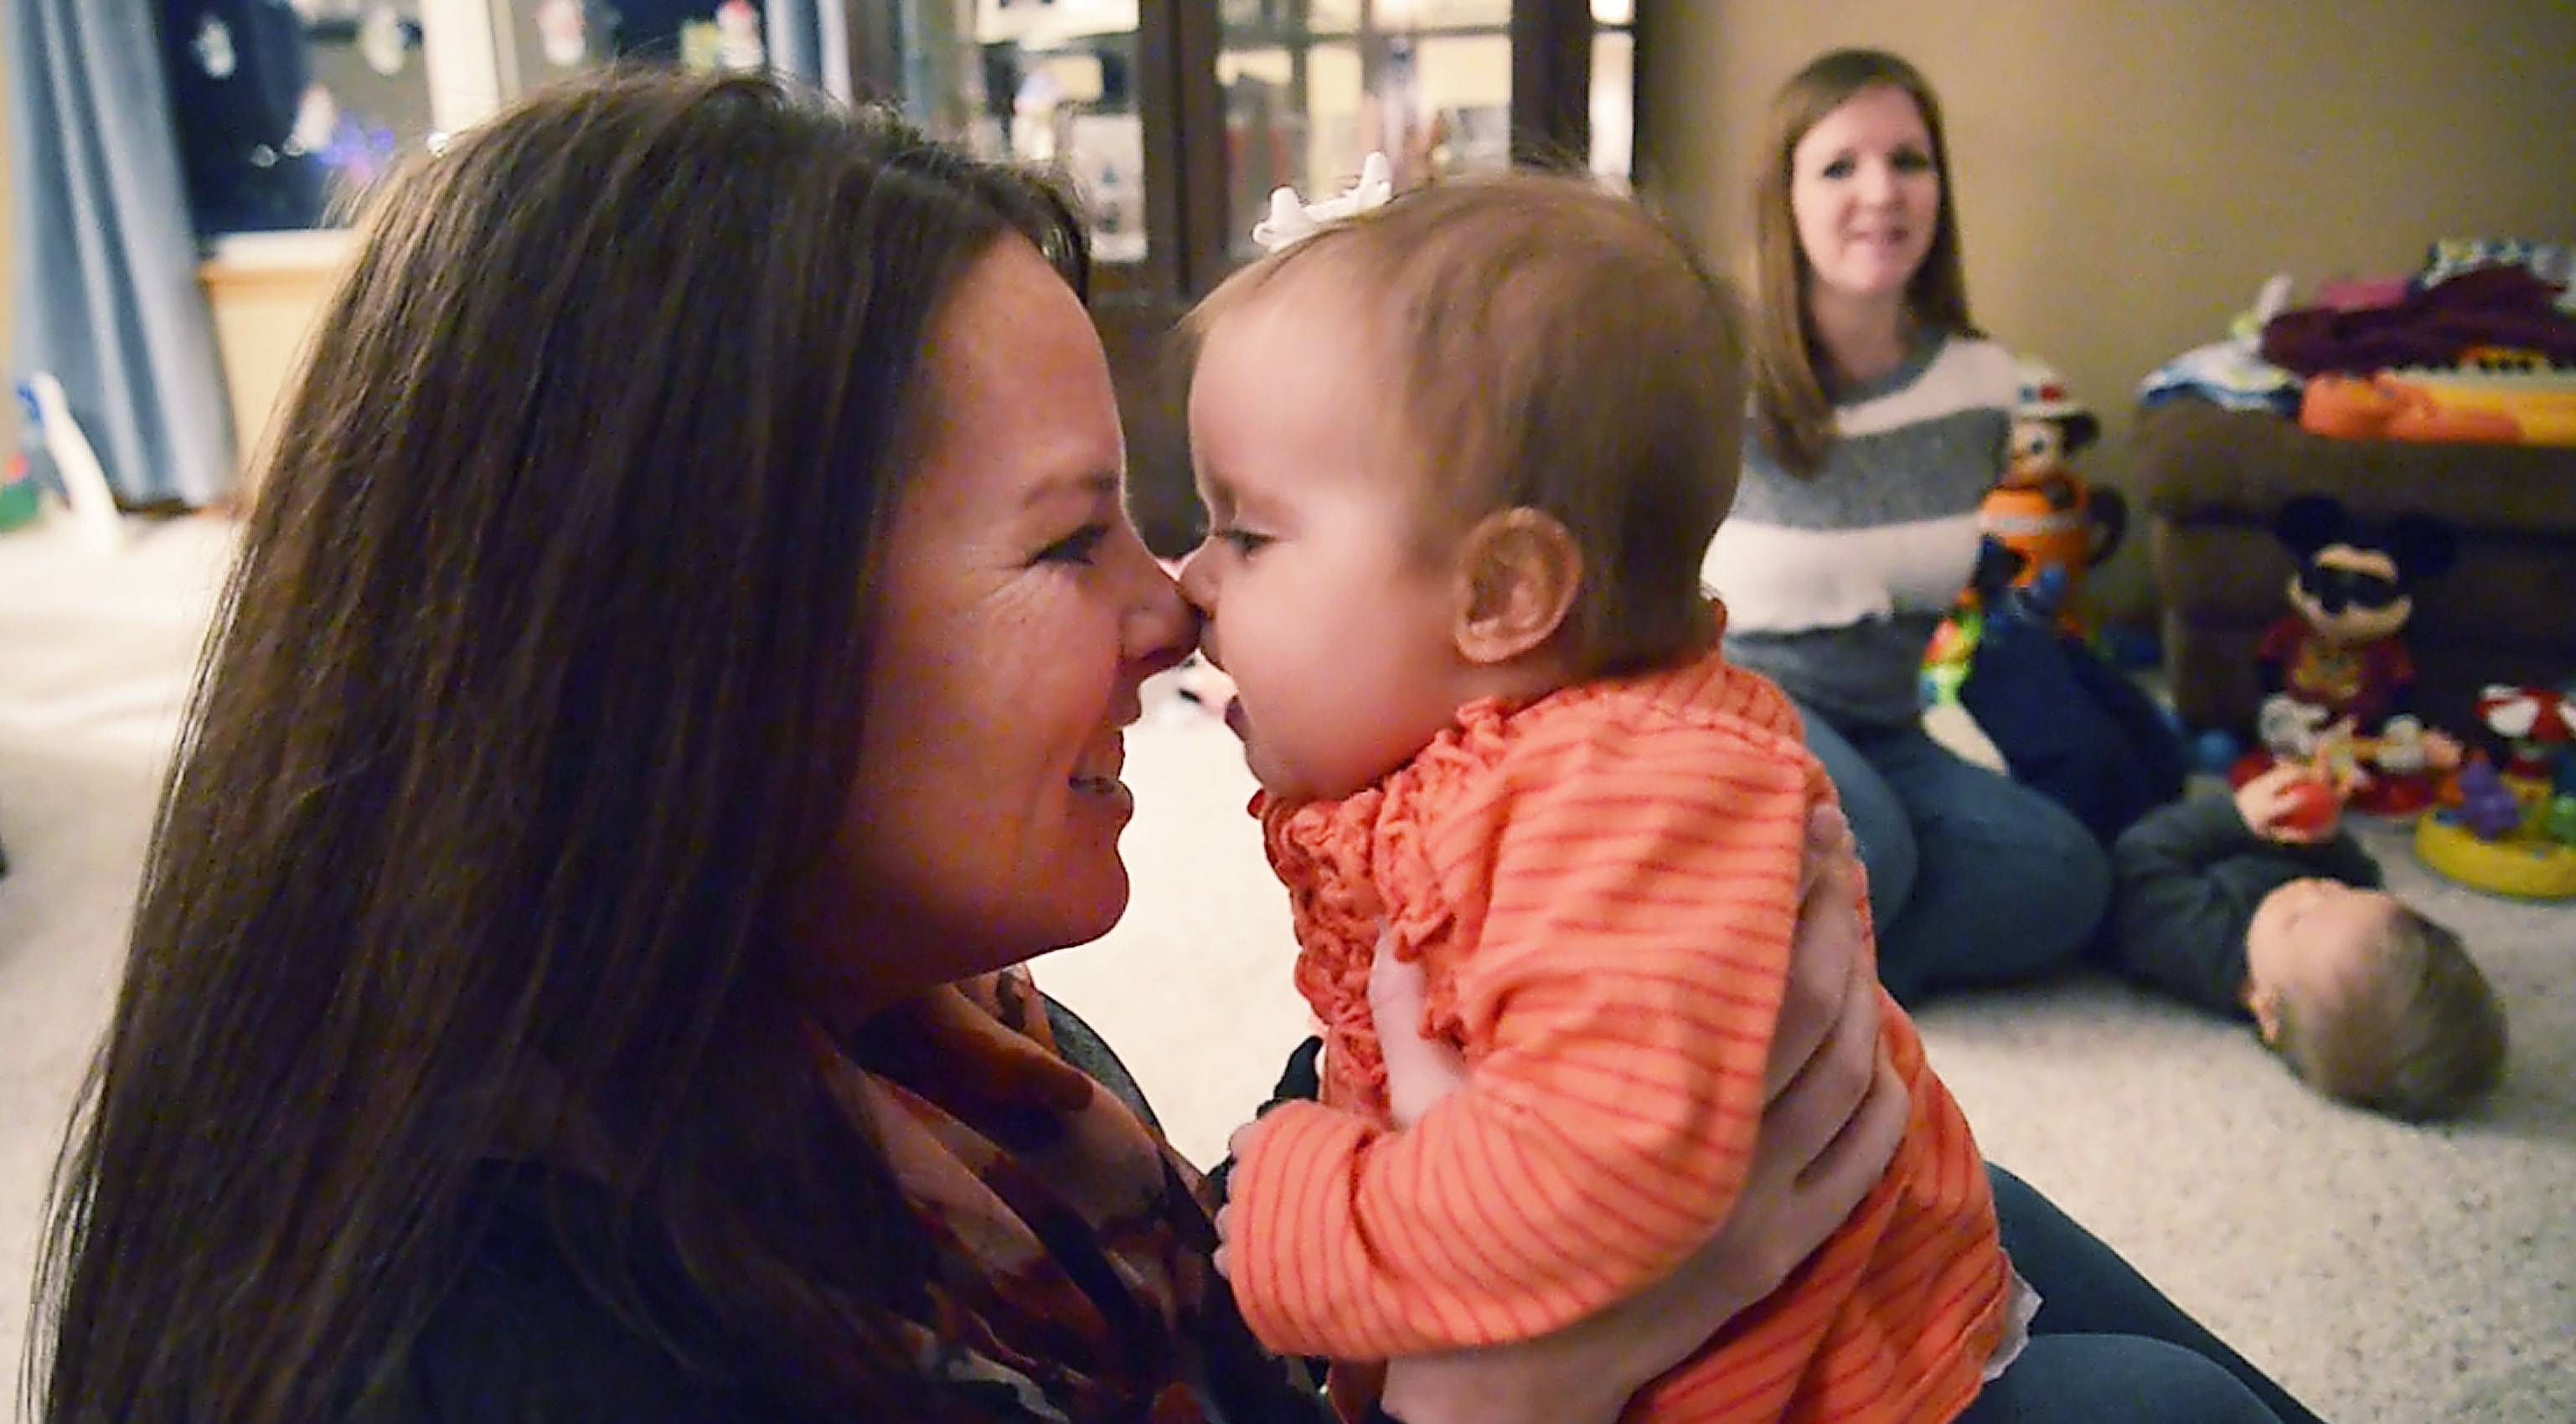 Holly Schlesser goes nose to nose with Madison Casey, to whom she donated her liver in November. Madison is the daughter of Schlesser's best friend, Tanya Casey of South Elgin, who plays with Madison's twin brother in the background in their South Elgin home.